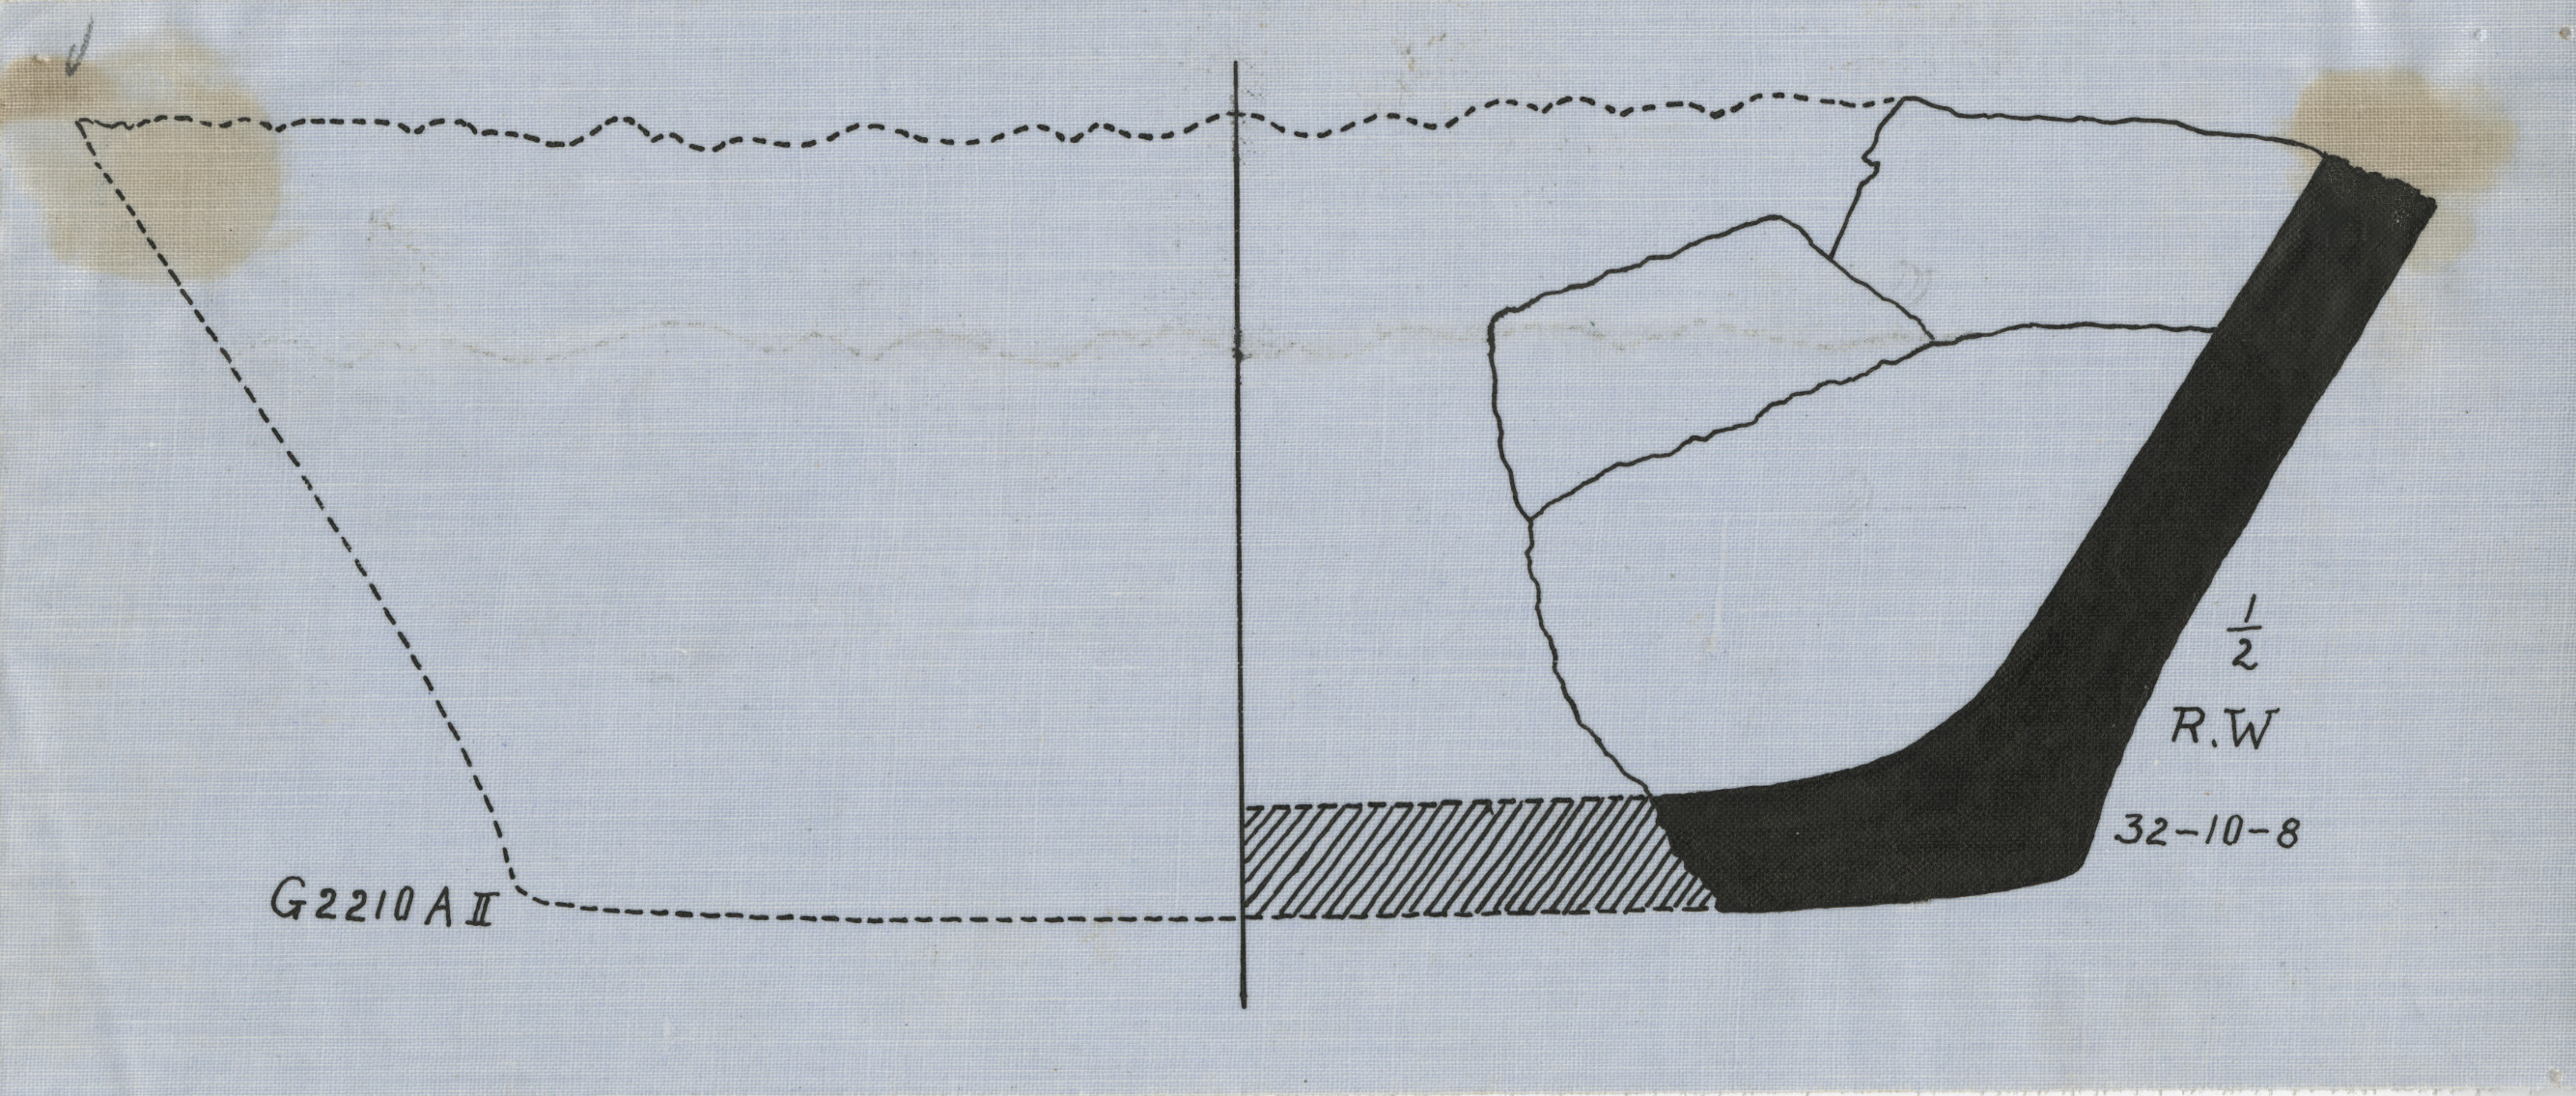 Drawings: G 2210, Shaft A: pottery, bowl